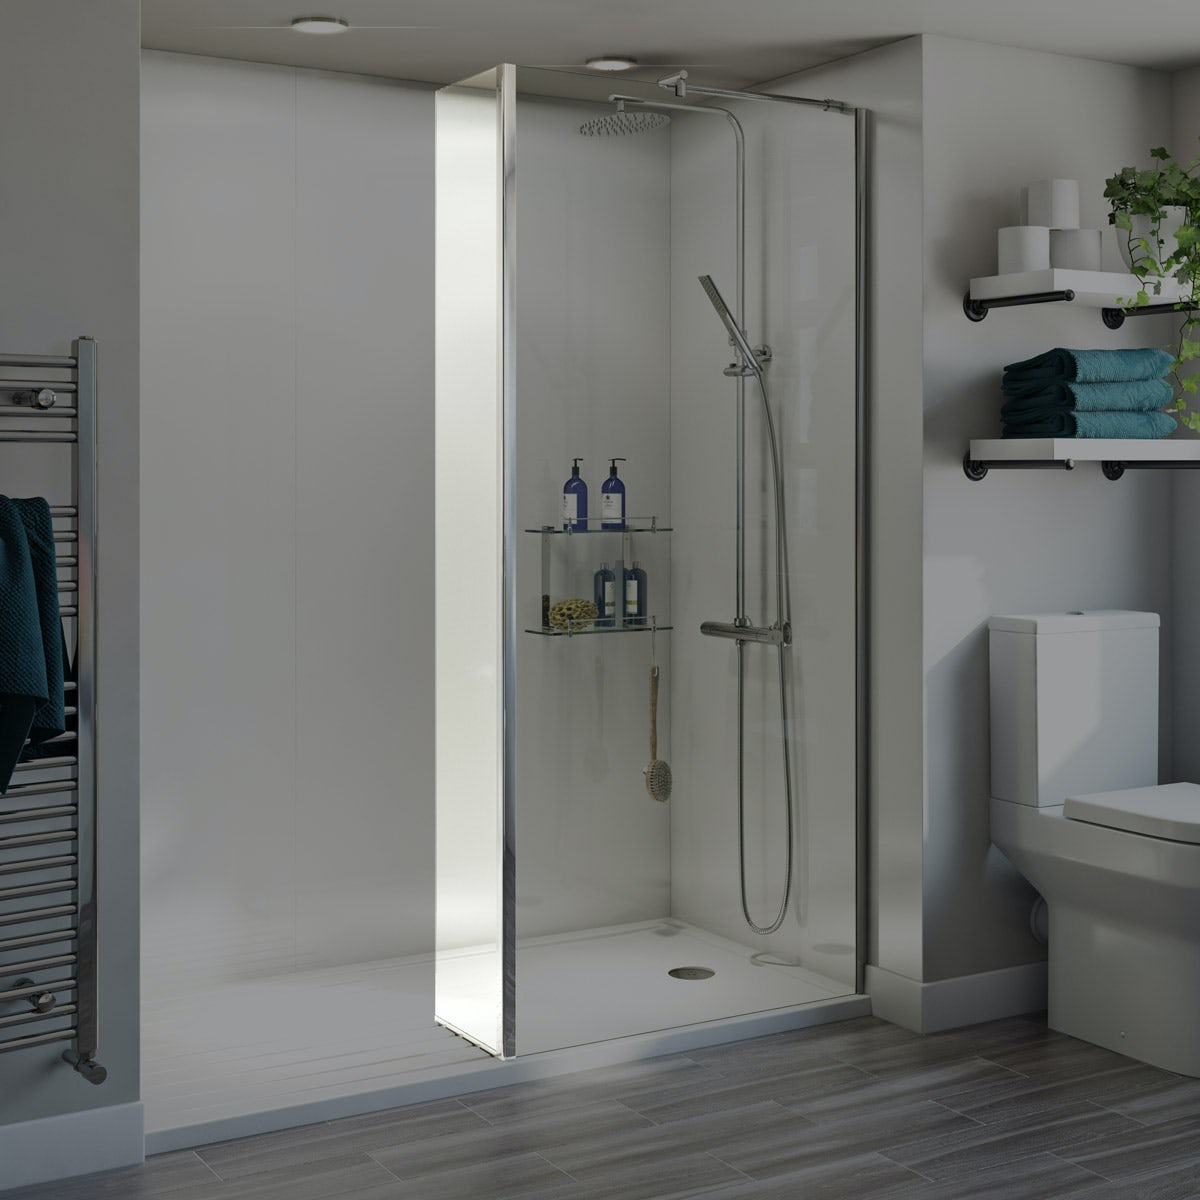 Orchard 6mm wet room fixed return panel 300mm